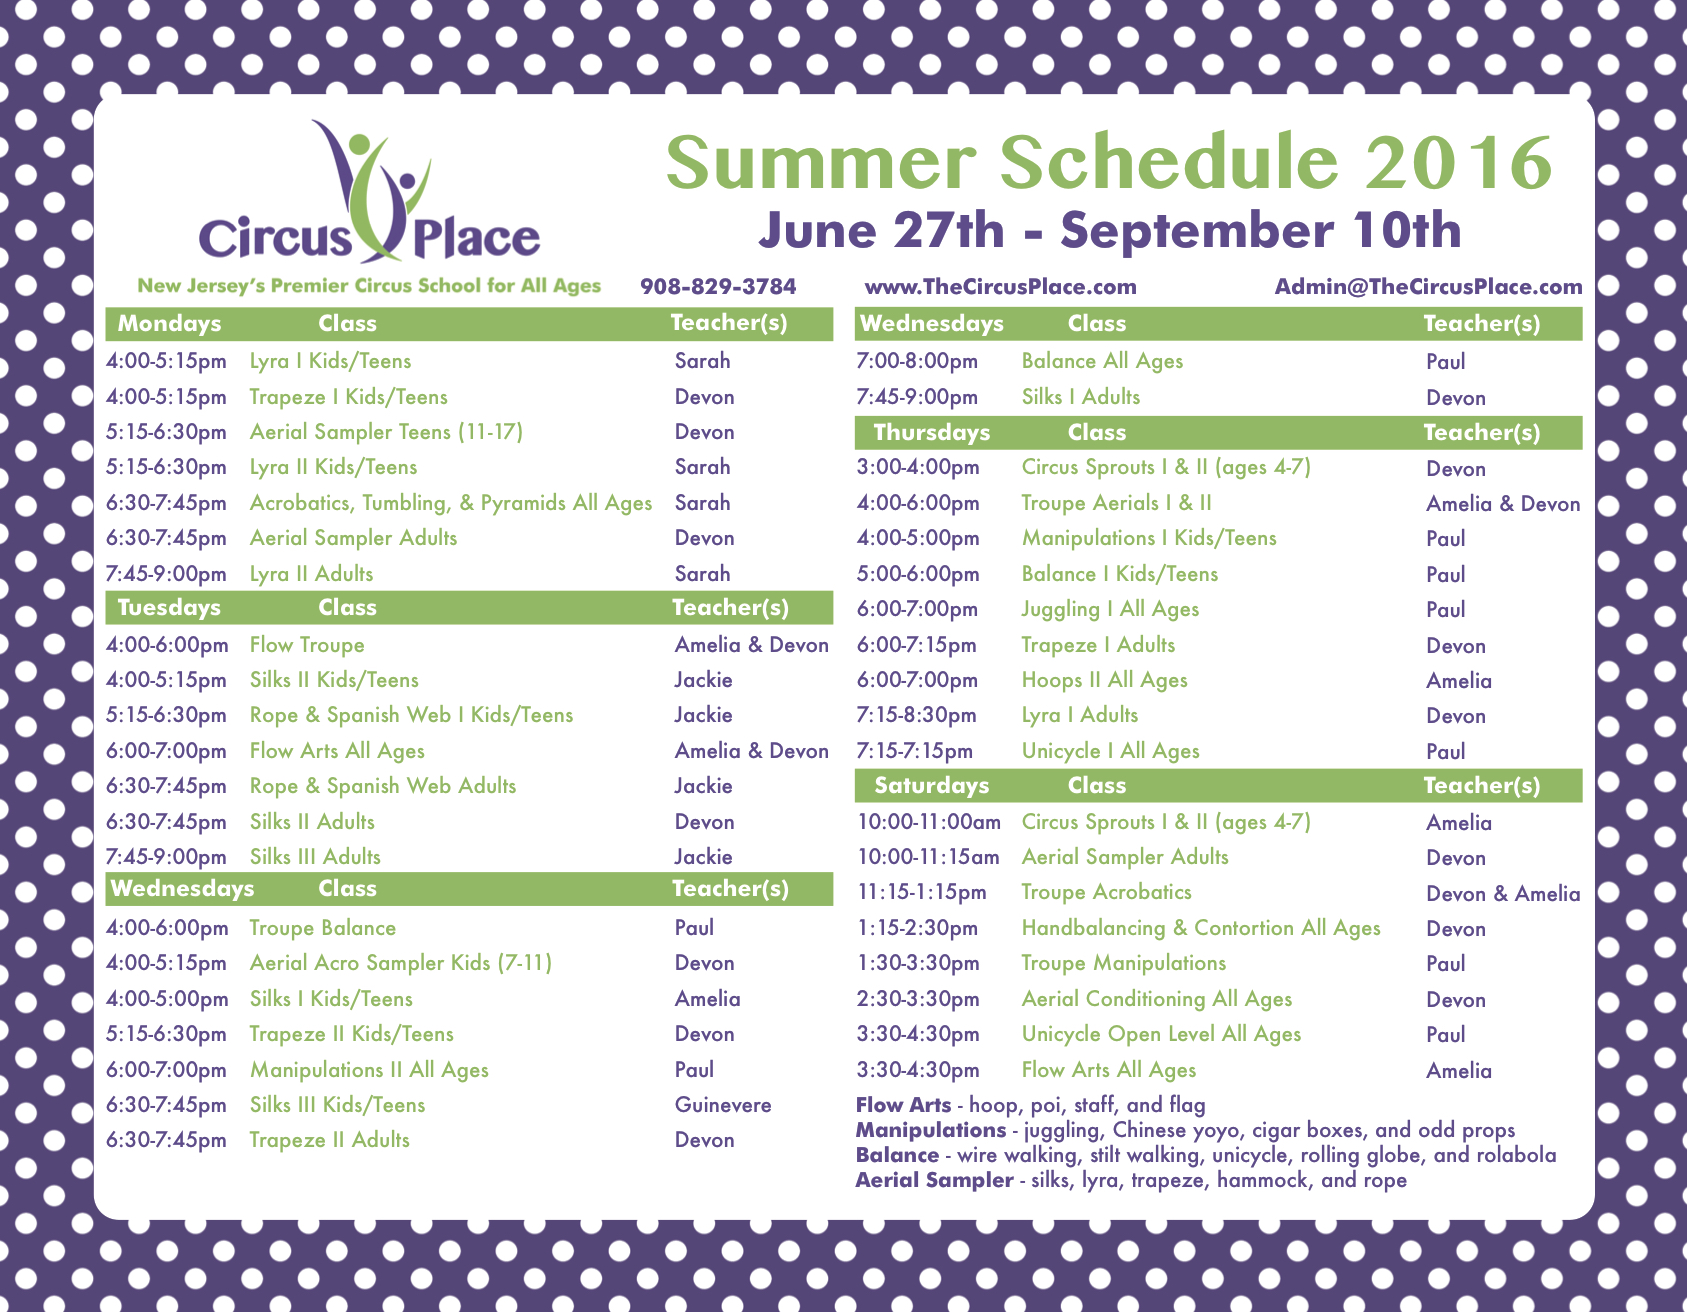 Circus Place Summer Schedule 2016 V3